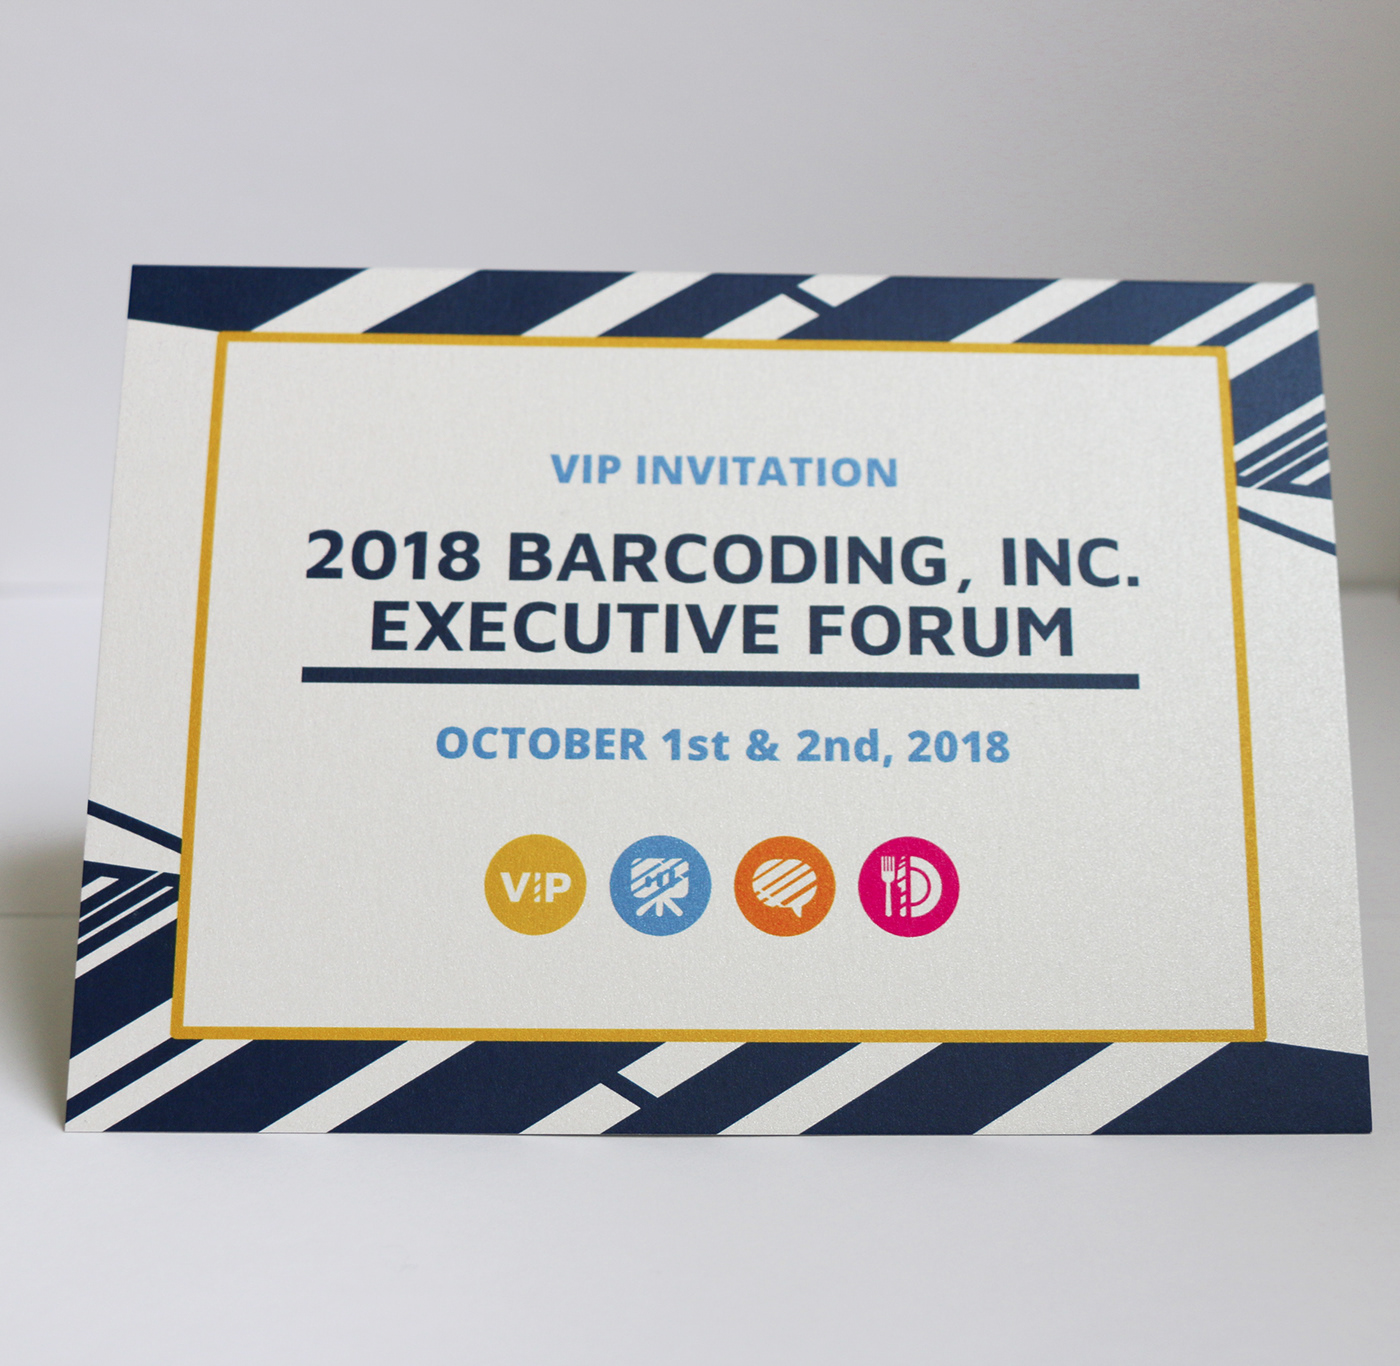 barcode Signage Event Branding abstract Invitation Vip Diecut social media Experience print design